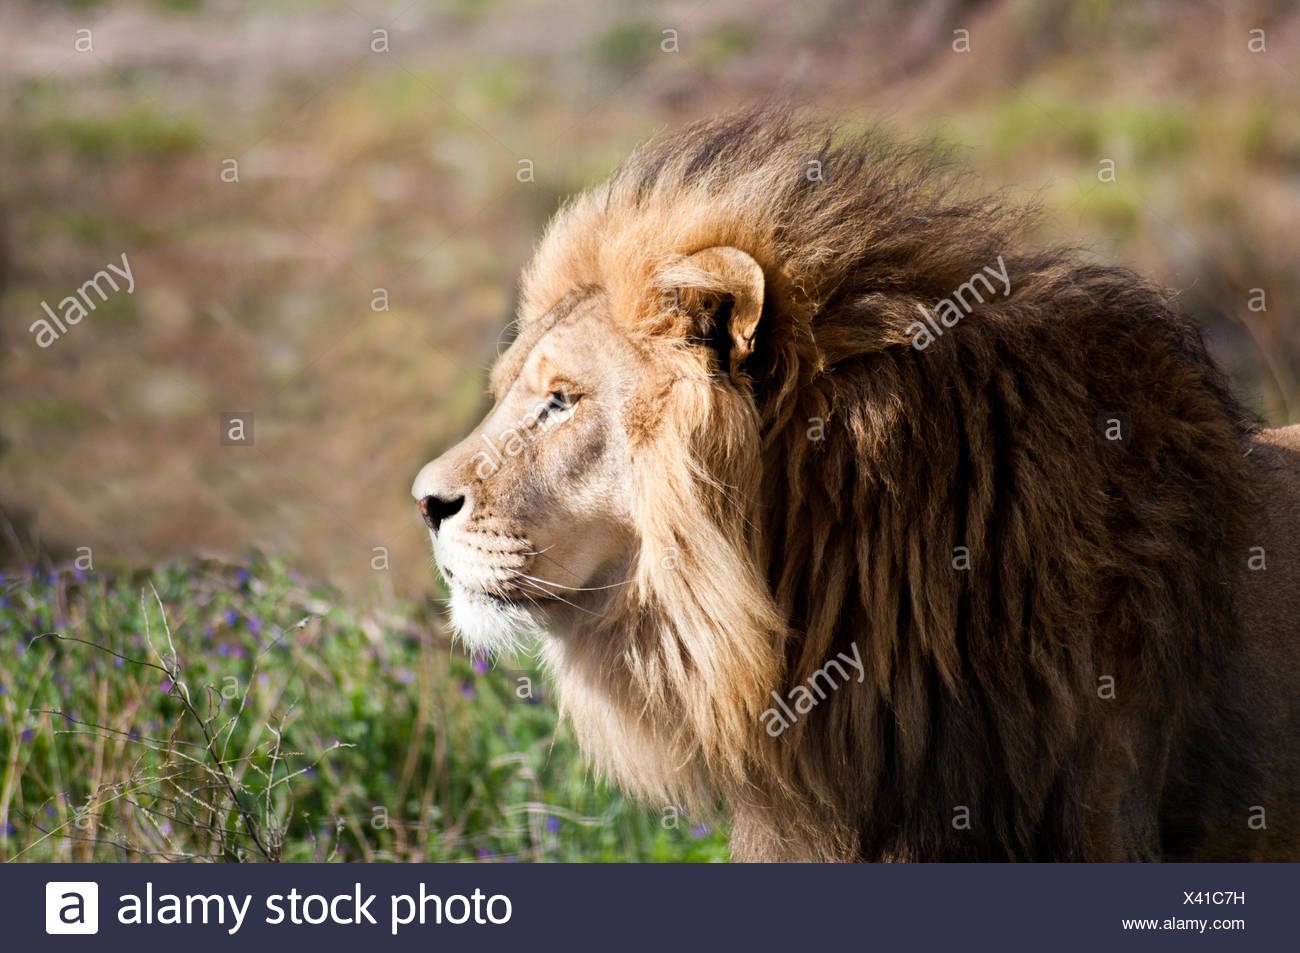 Portrait d'un lion, Limpopo, Afrique du Sud Photo Stock